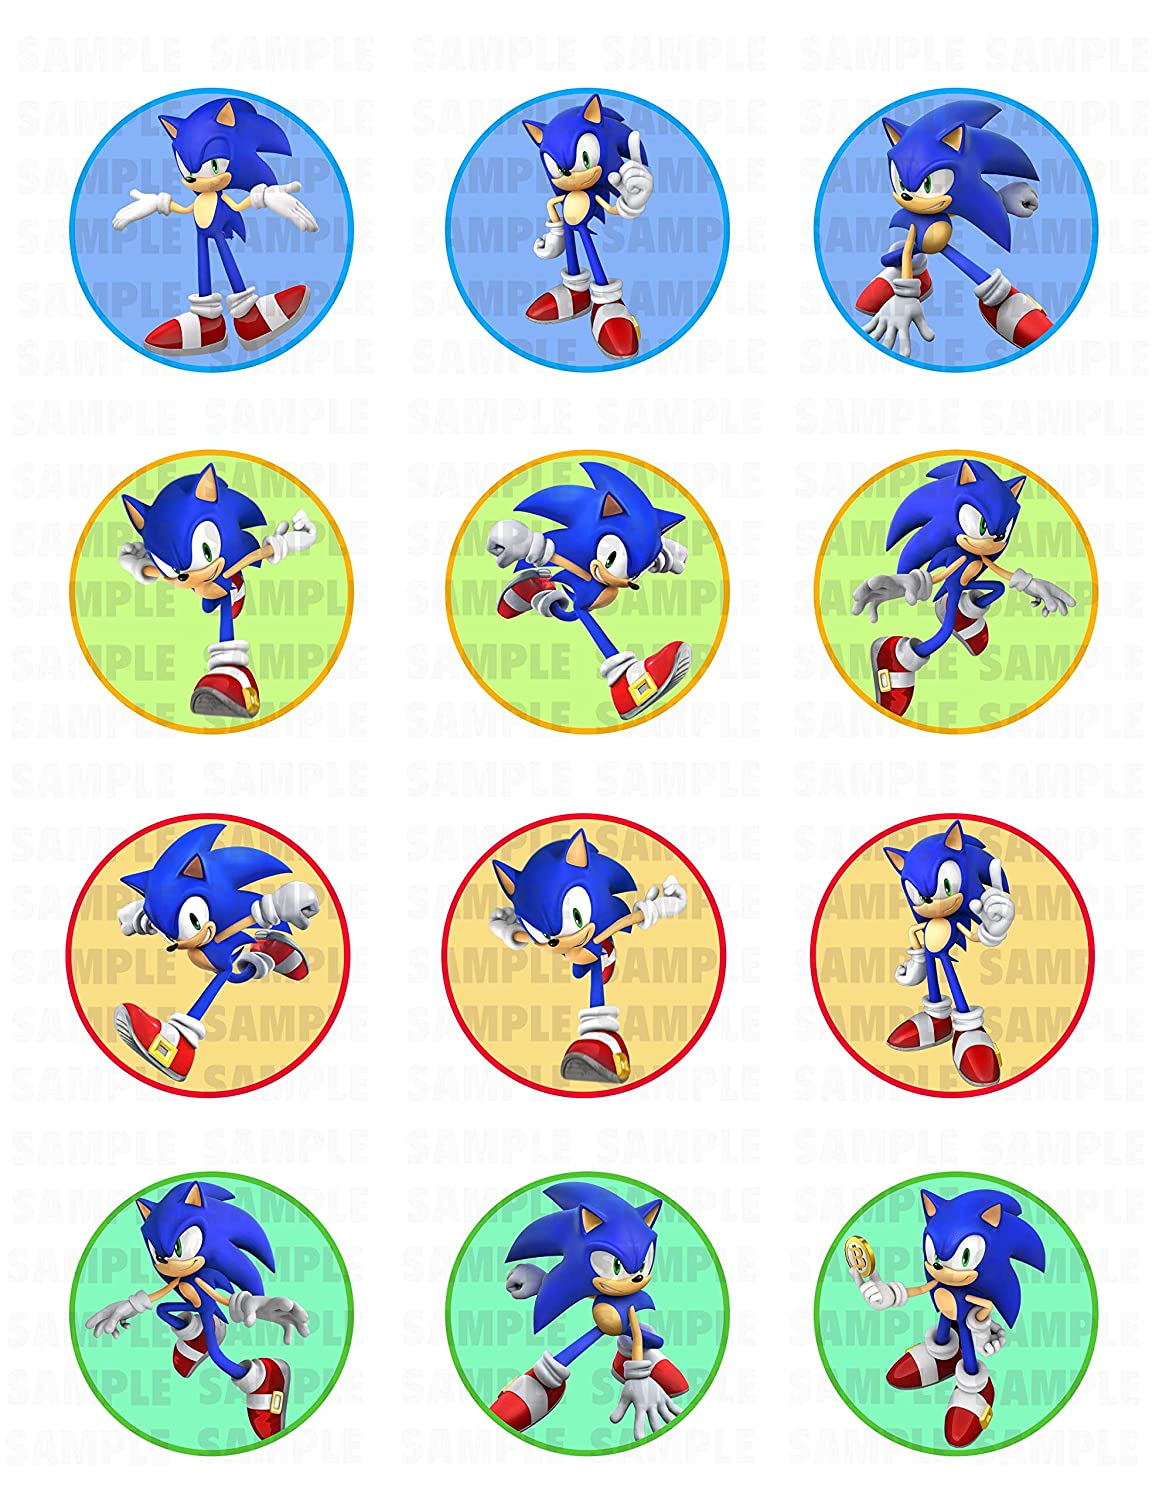 625974b23973 Sonic the Hedgehog Edible Cupcake Toppers (12 Images) Cake Image Icing  Sugar Sheet Edible Cake Images